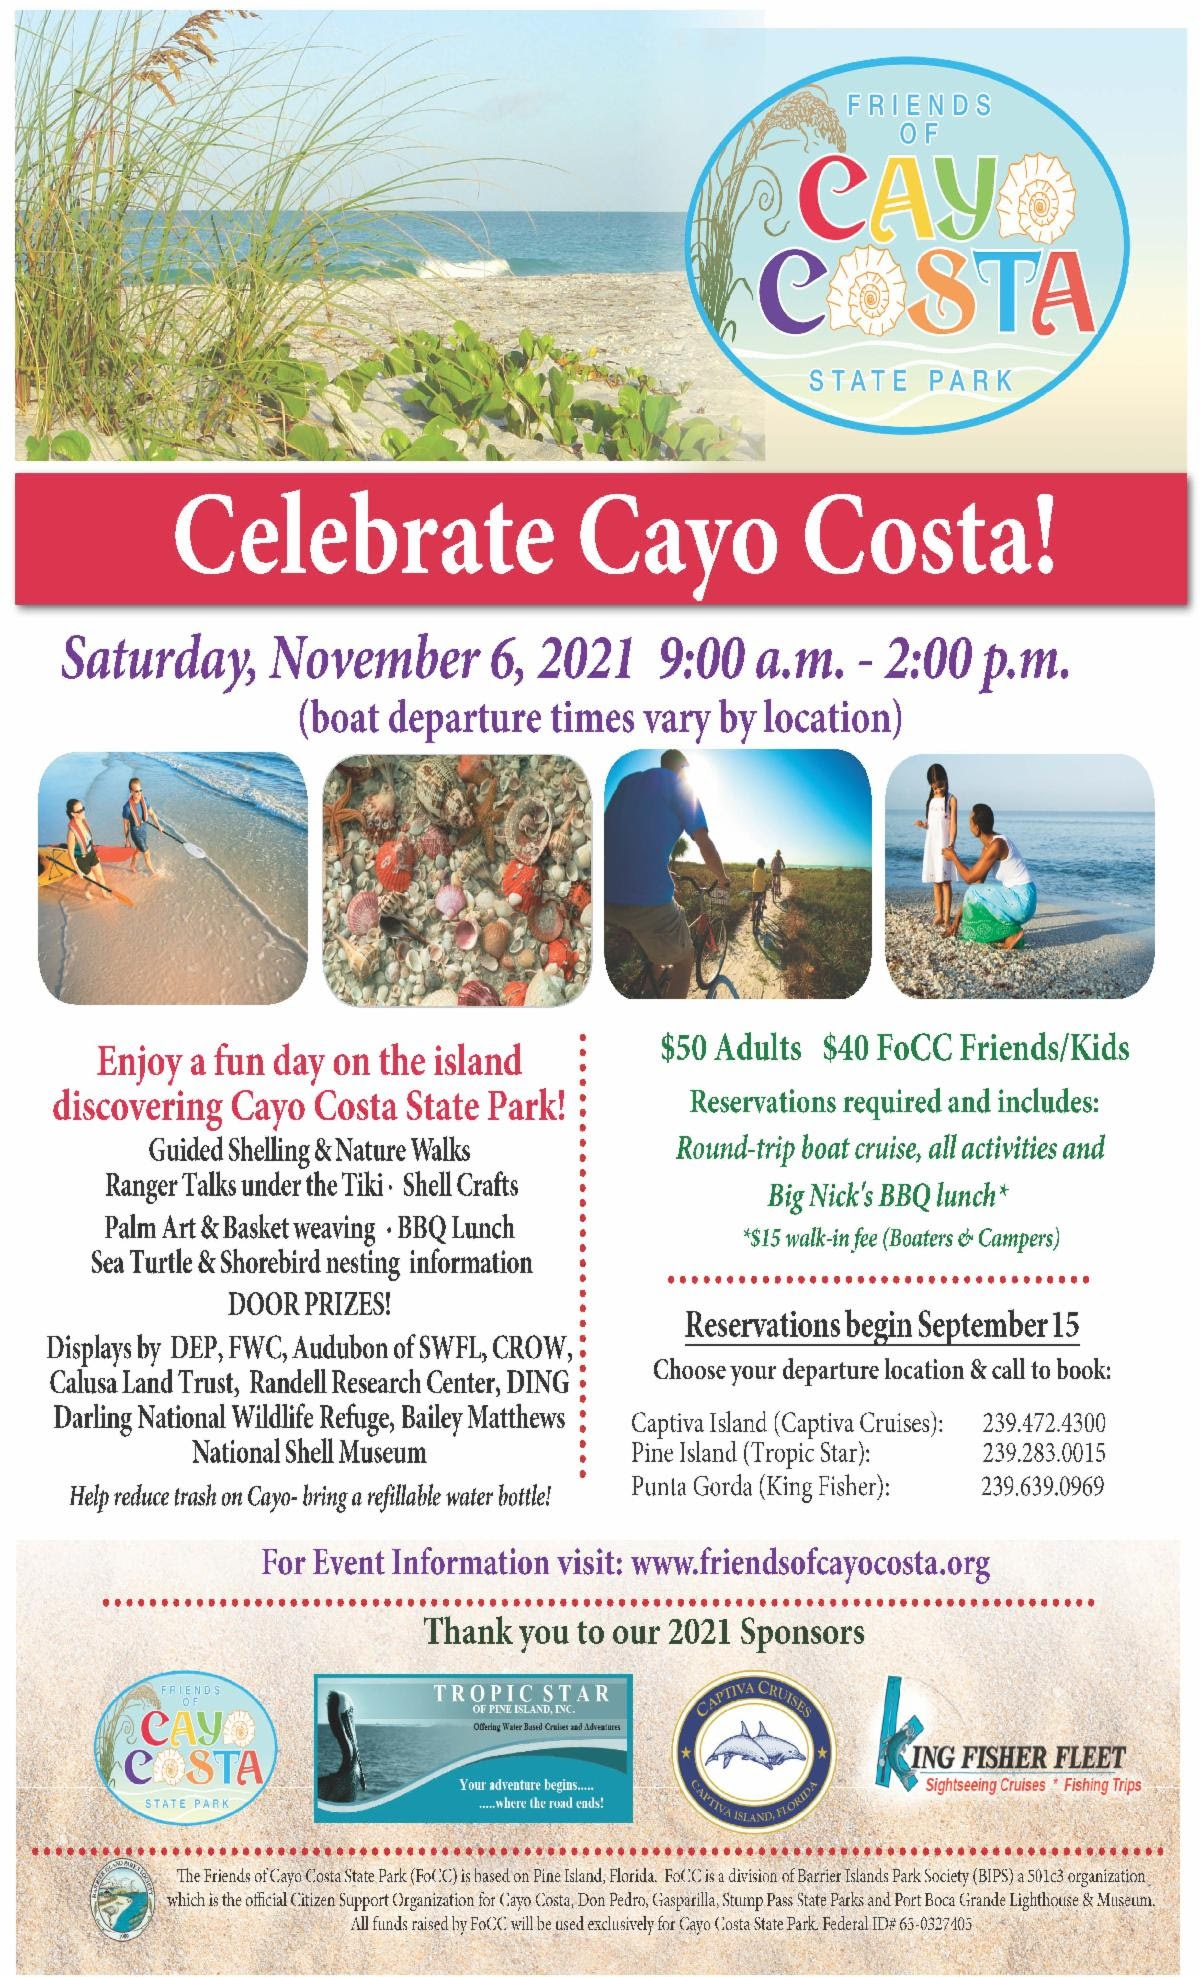 Flyer for Celebrate Cayo Costa event